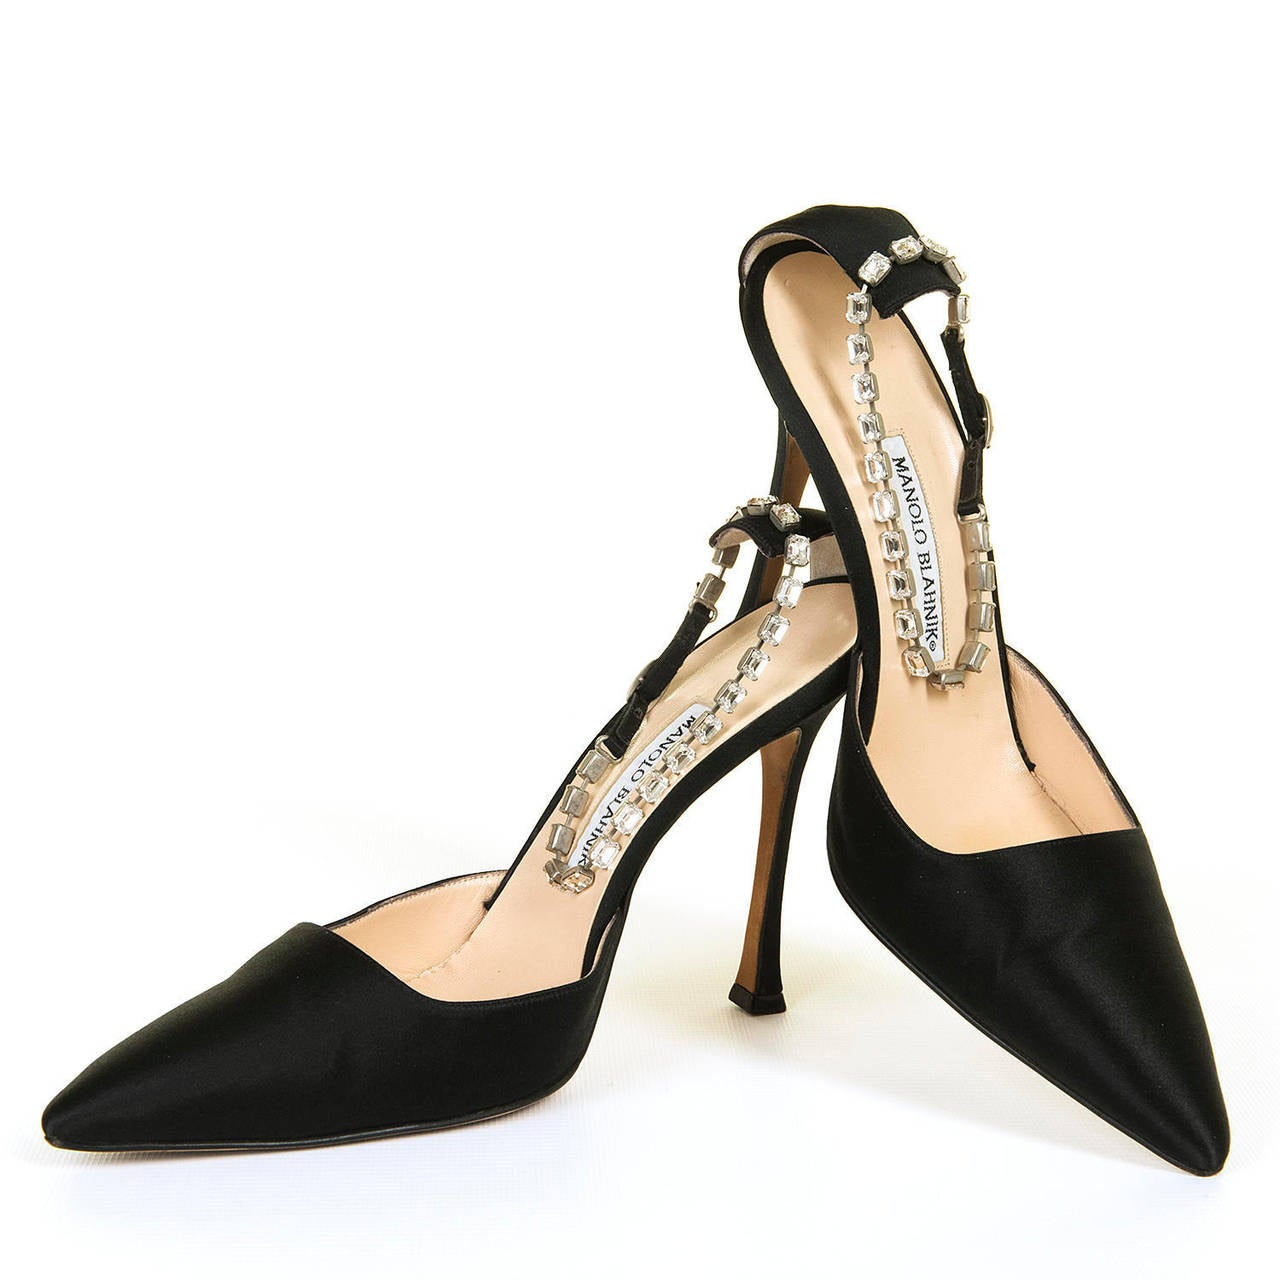 Important manolo blahnik shoes and matching bag in black for Shoe designer manolo blahnik